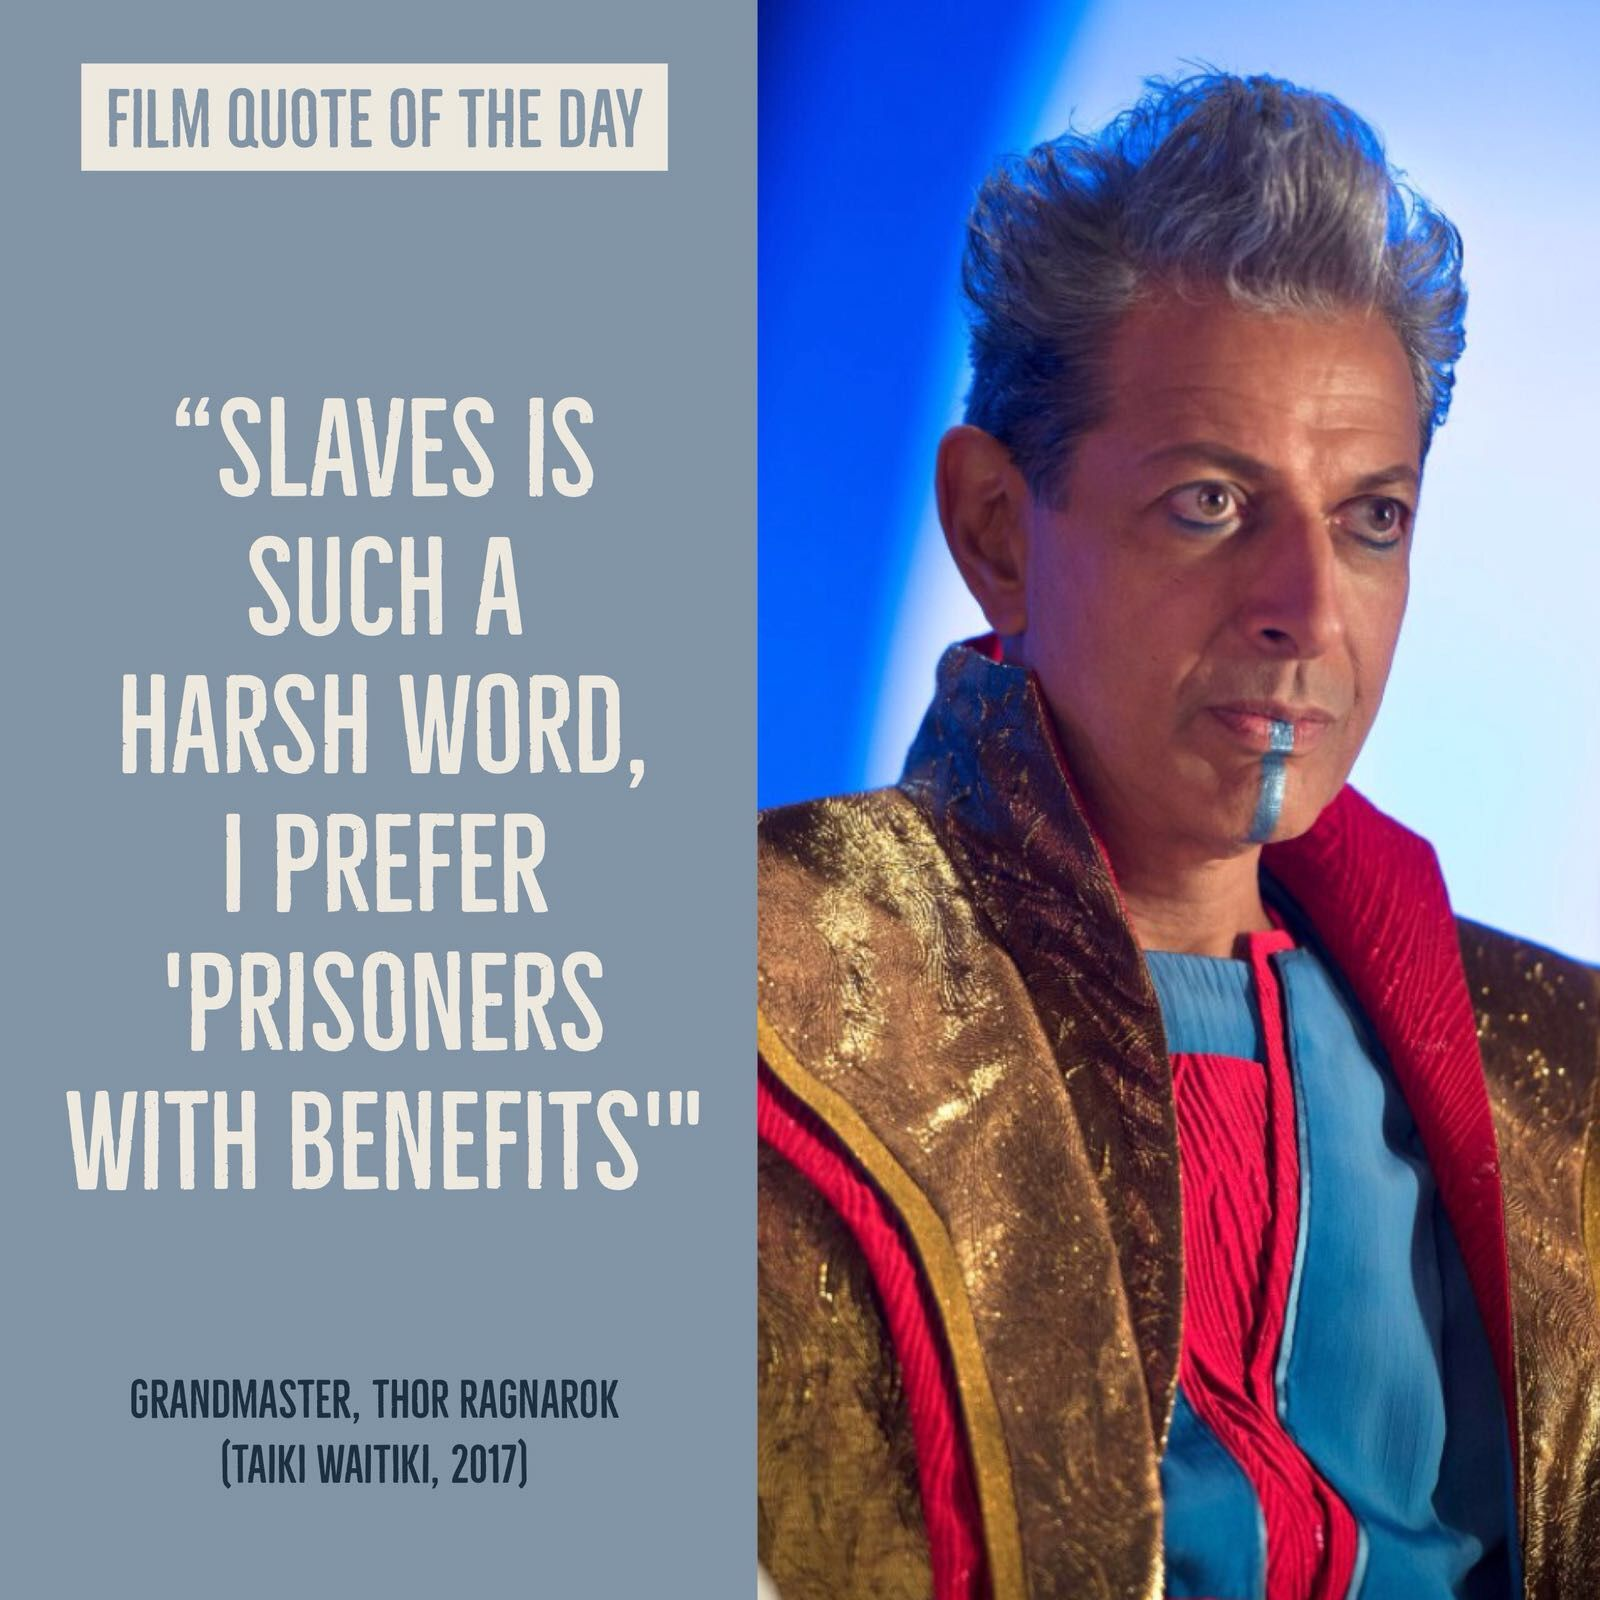 Today's quoteoftheday comes from the Grandmaster played